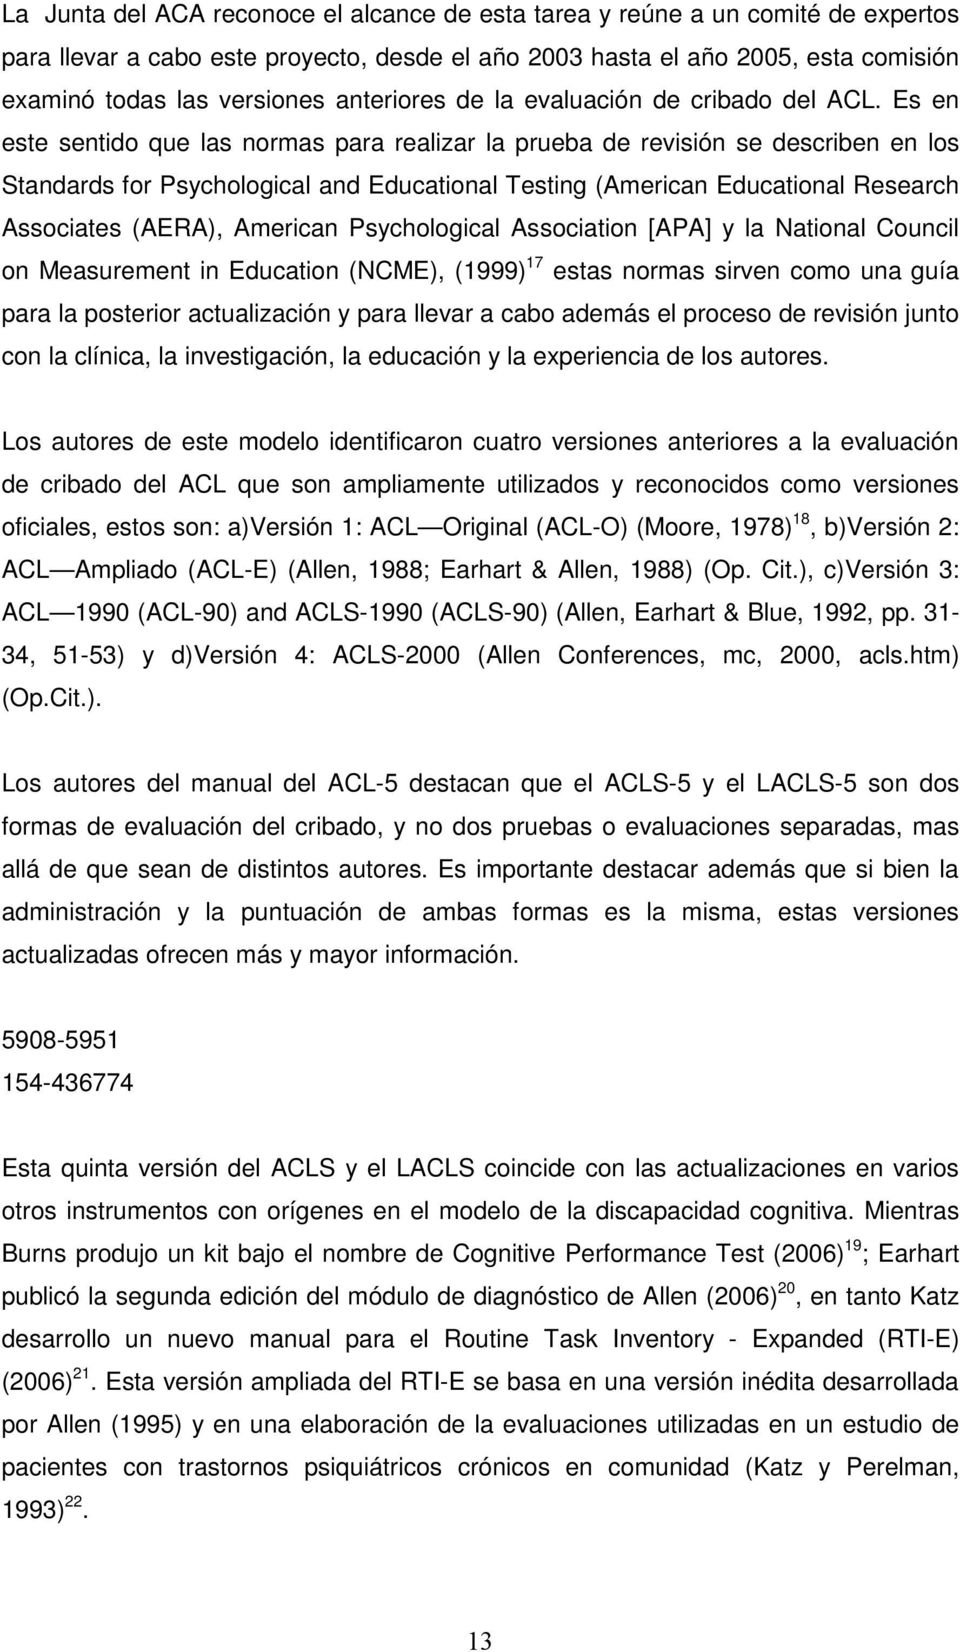 Es en este sentido que las normas para realizar la prueba de revisión se describen en los Standards for Psychological and Educational Testing (American Educational Research Associates (AERA),